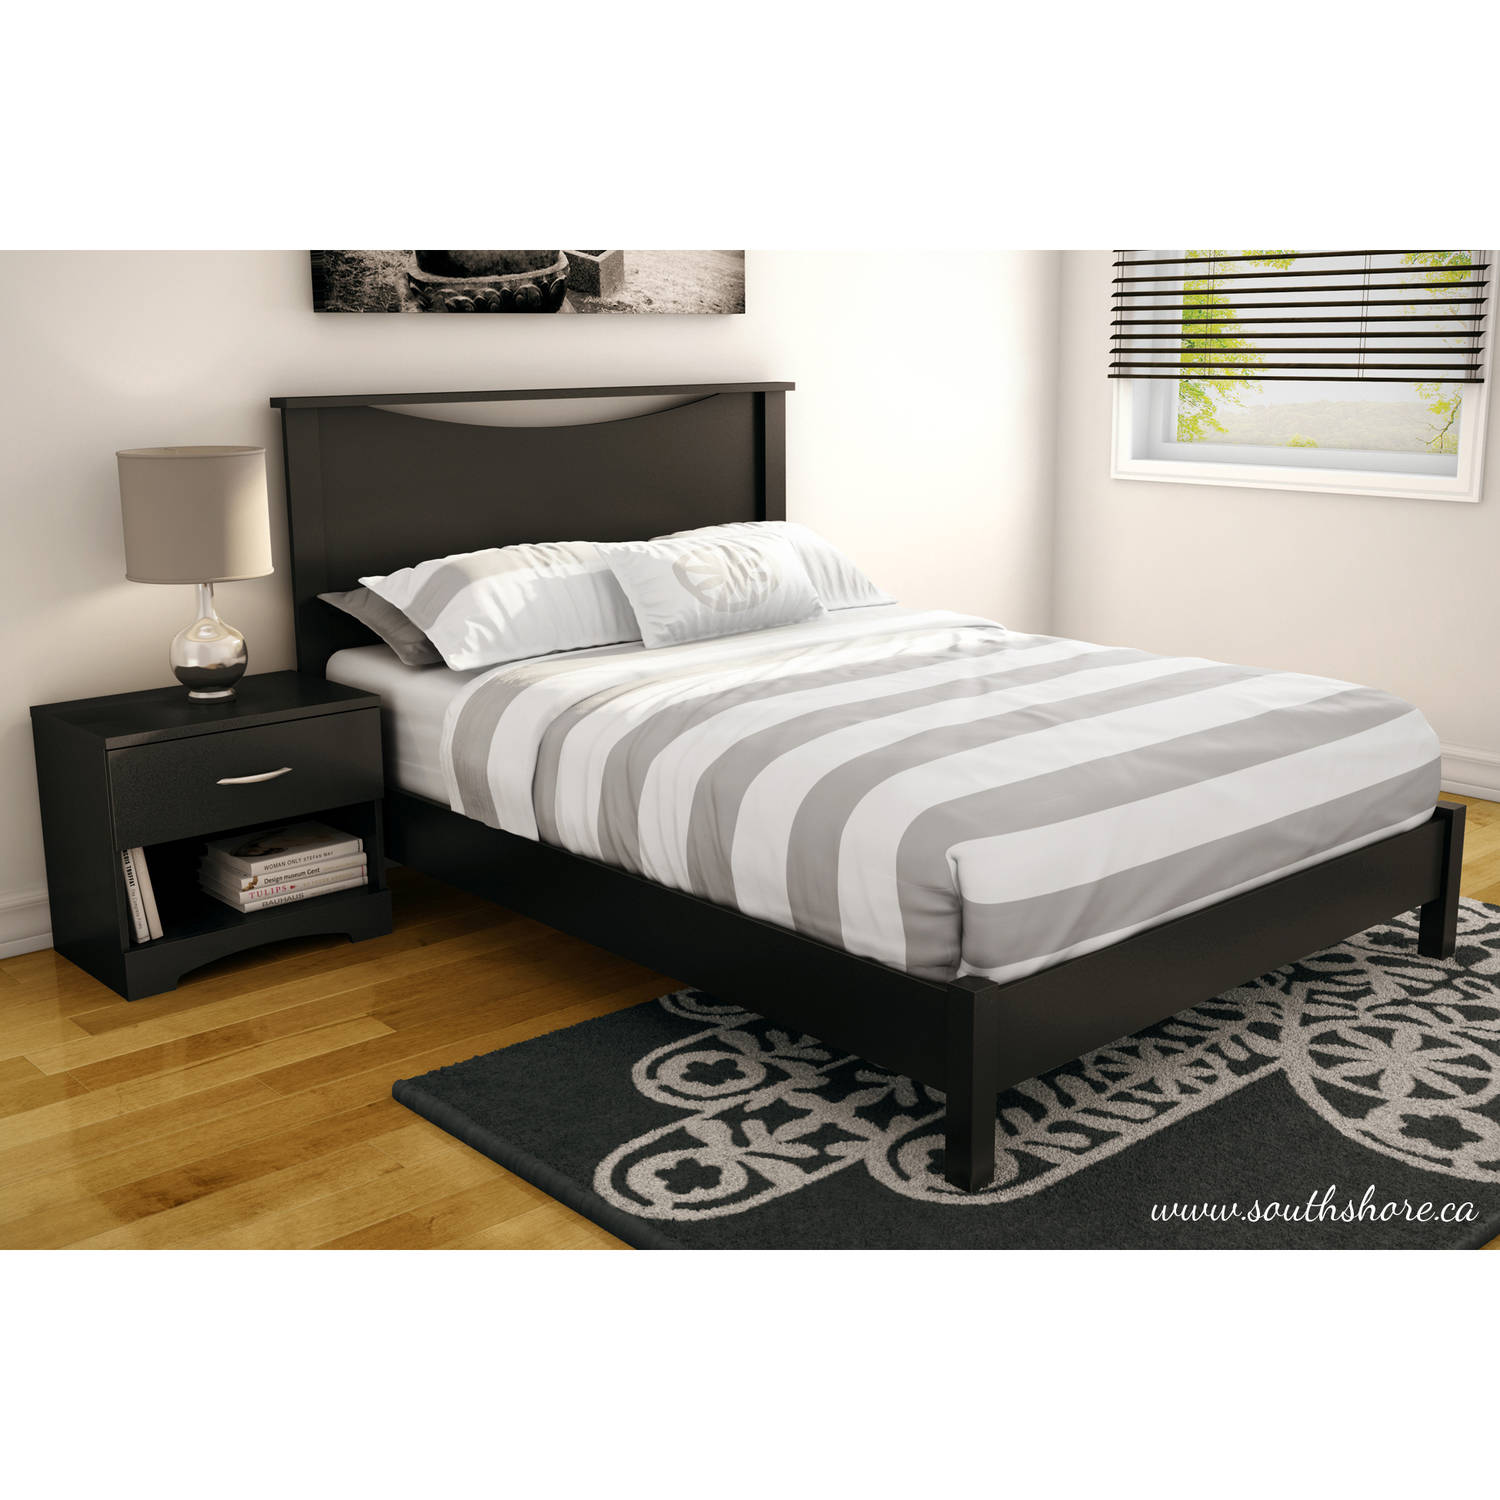 south shore soho queen platform bed u0026 headboard with 2 nightstands multiple finishes walmartcom